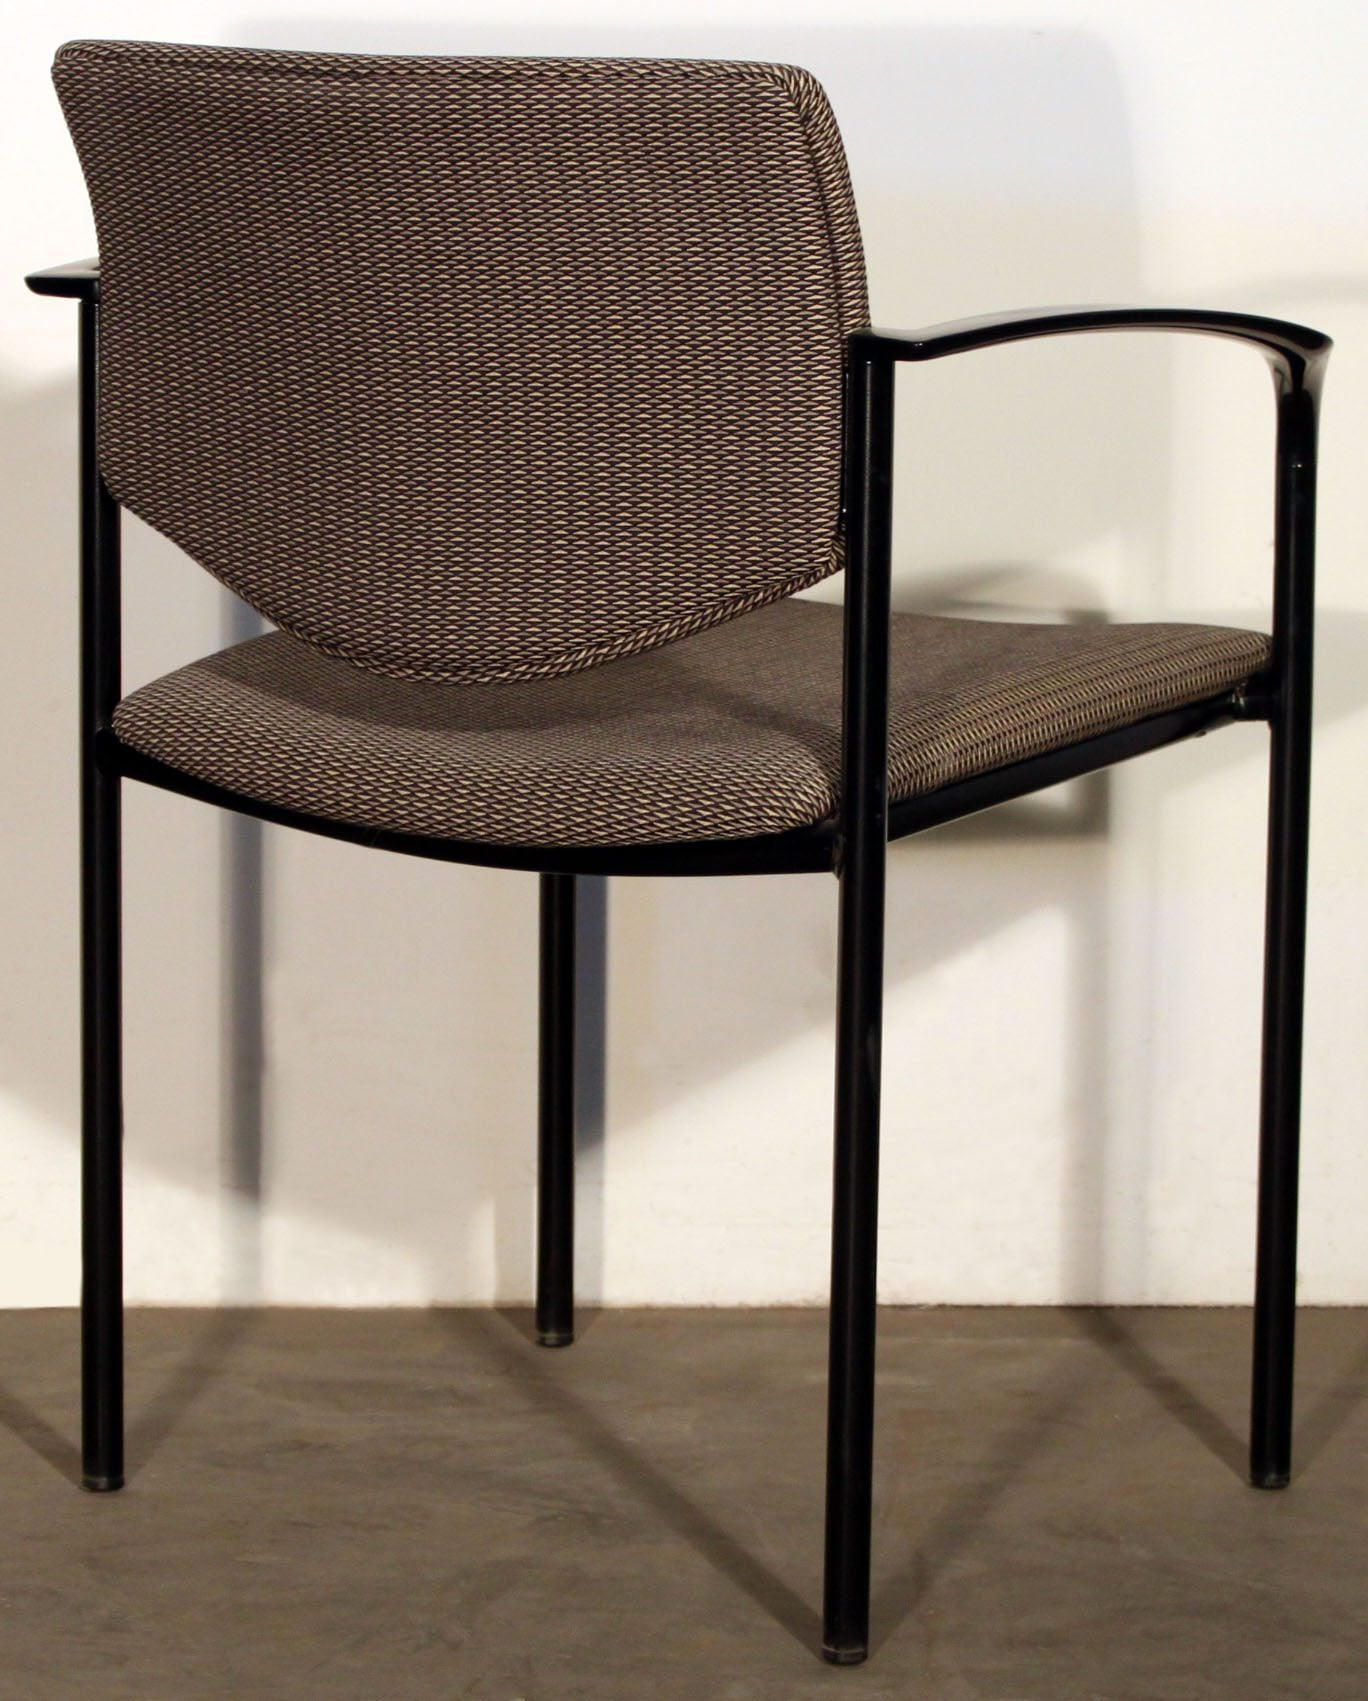 Steelcase Player Used Stackable Chair Brown and Tan